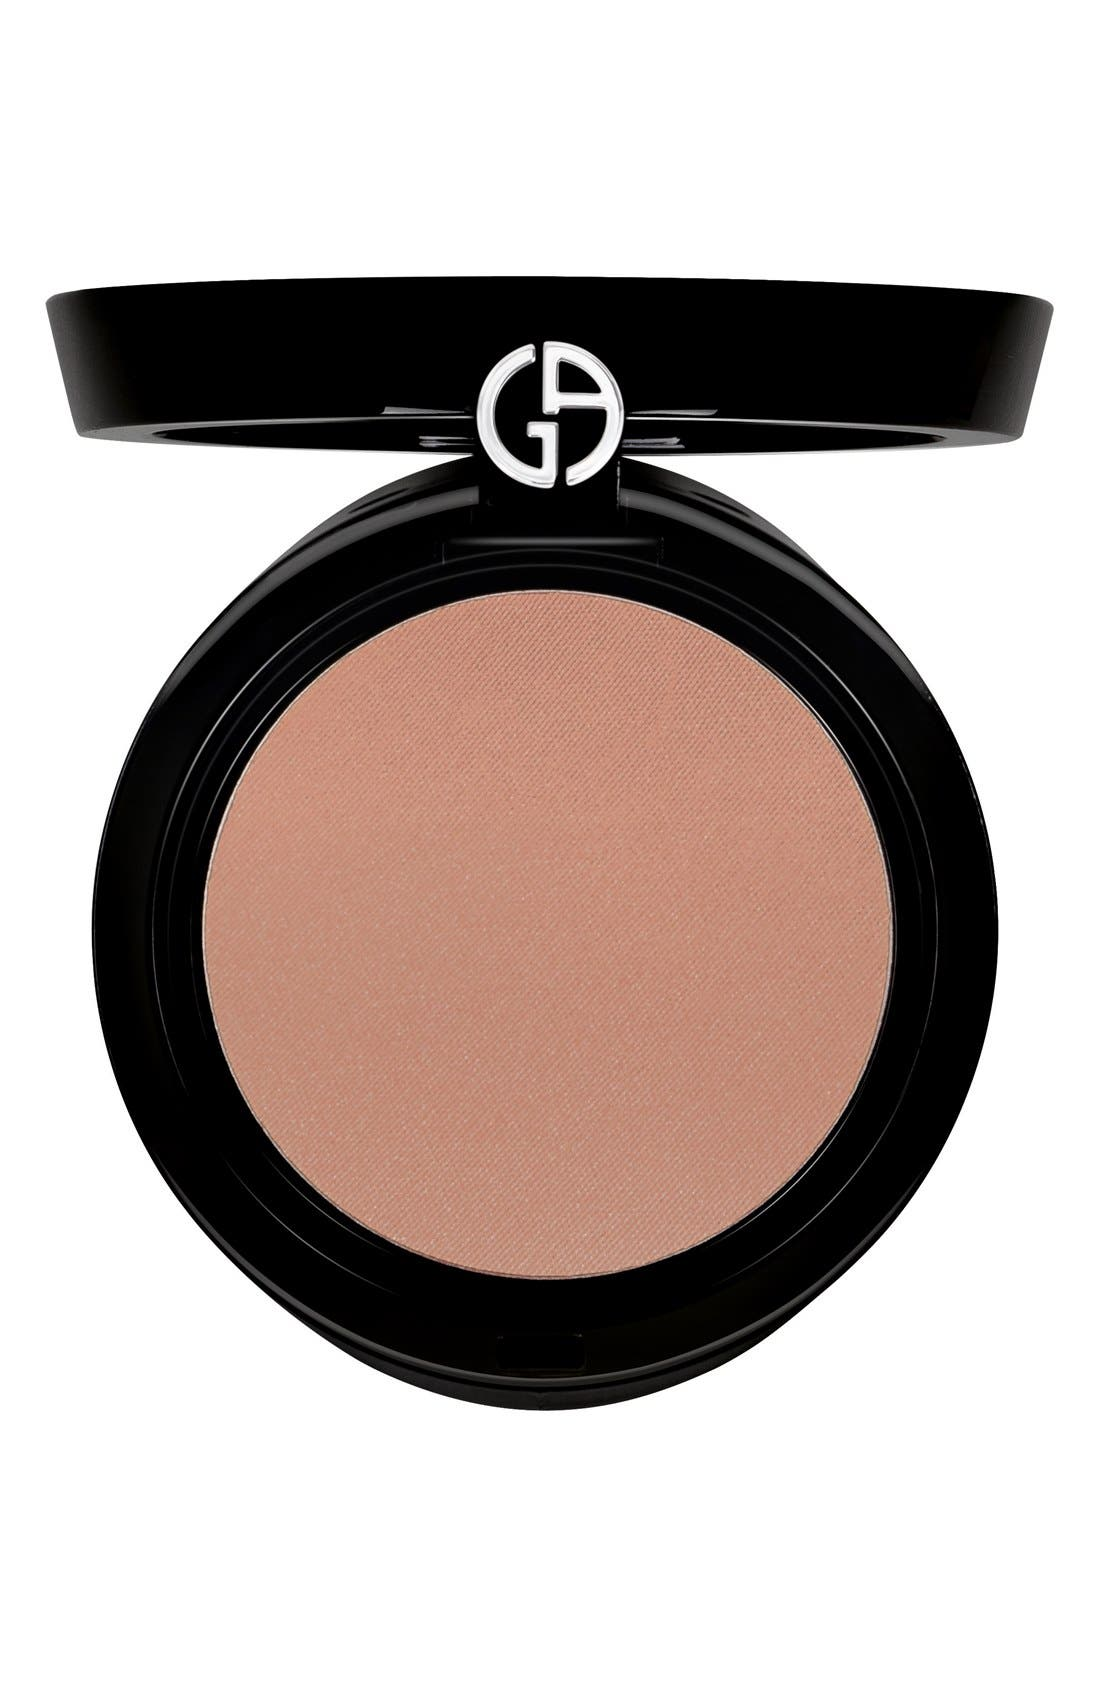 Giorgio Armani 'Cheek Fabric' Blush